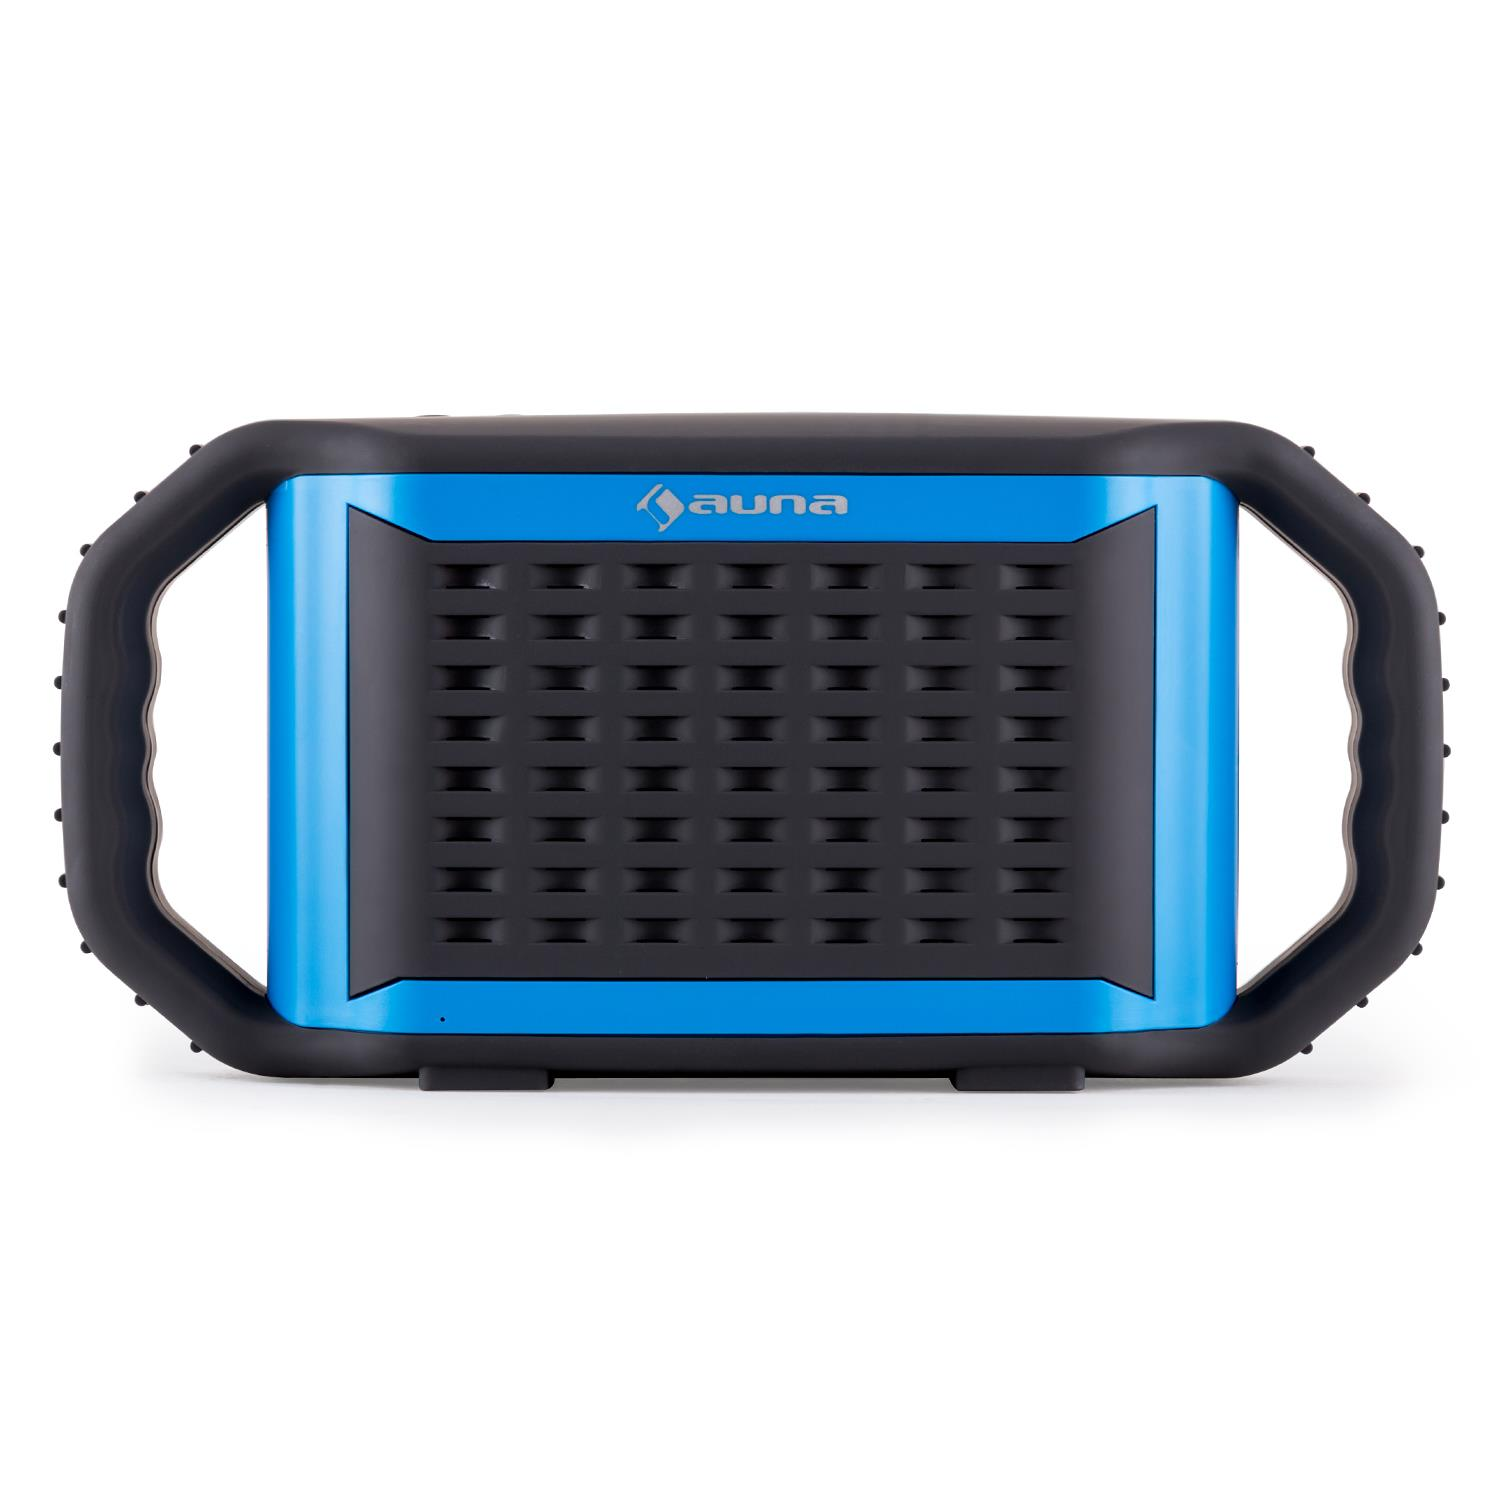 miniature 2 - ENCEINTE-NOMADE-SANS-FIL-BLUETOOTH-AUX-STREAMING-AUDIO-SMARTPHONE-TABLETTE-BLEU